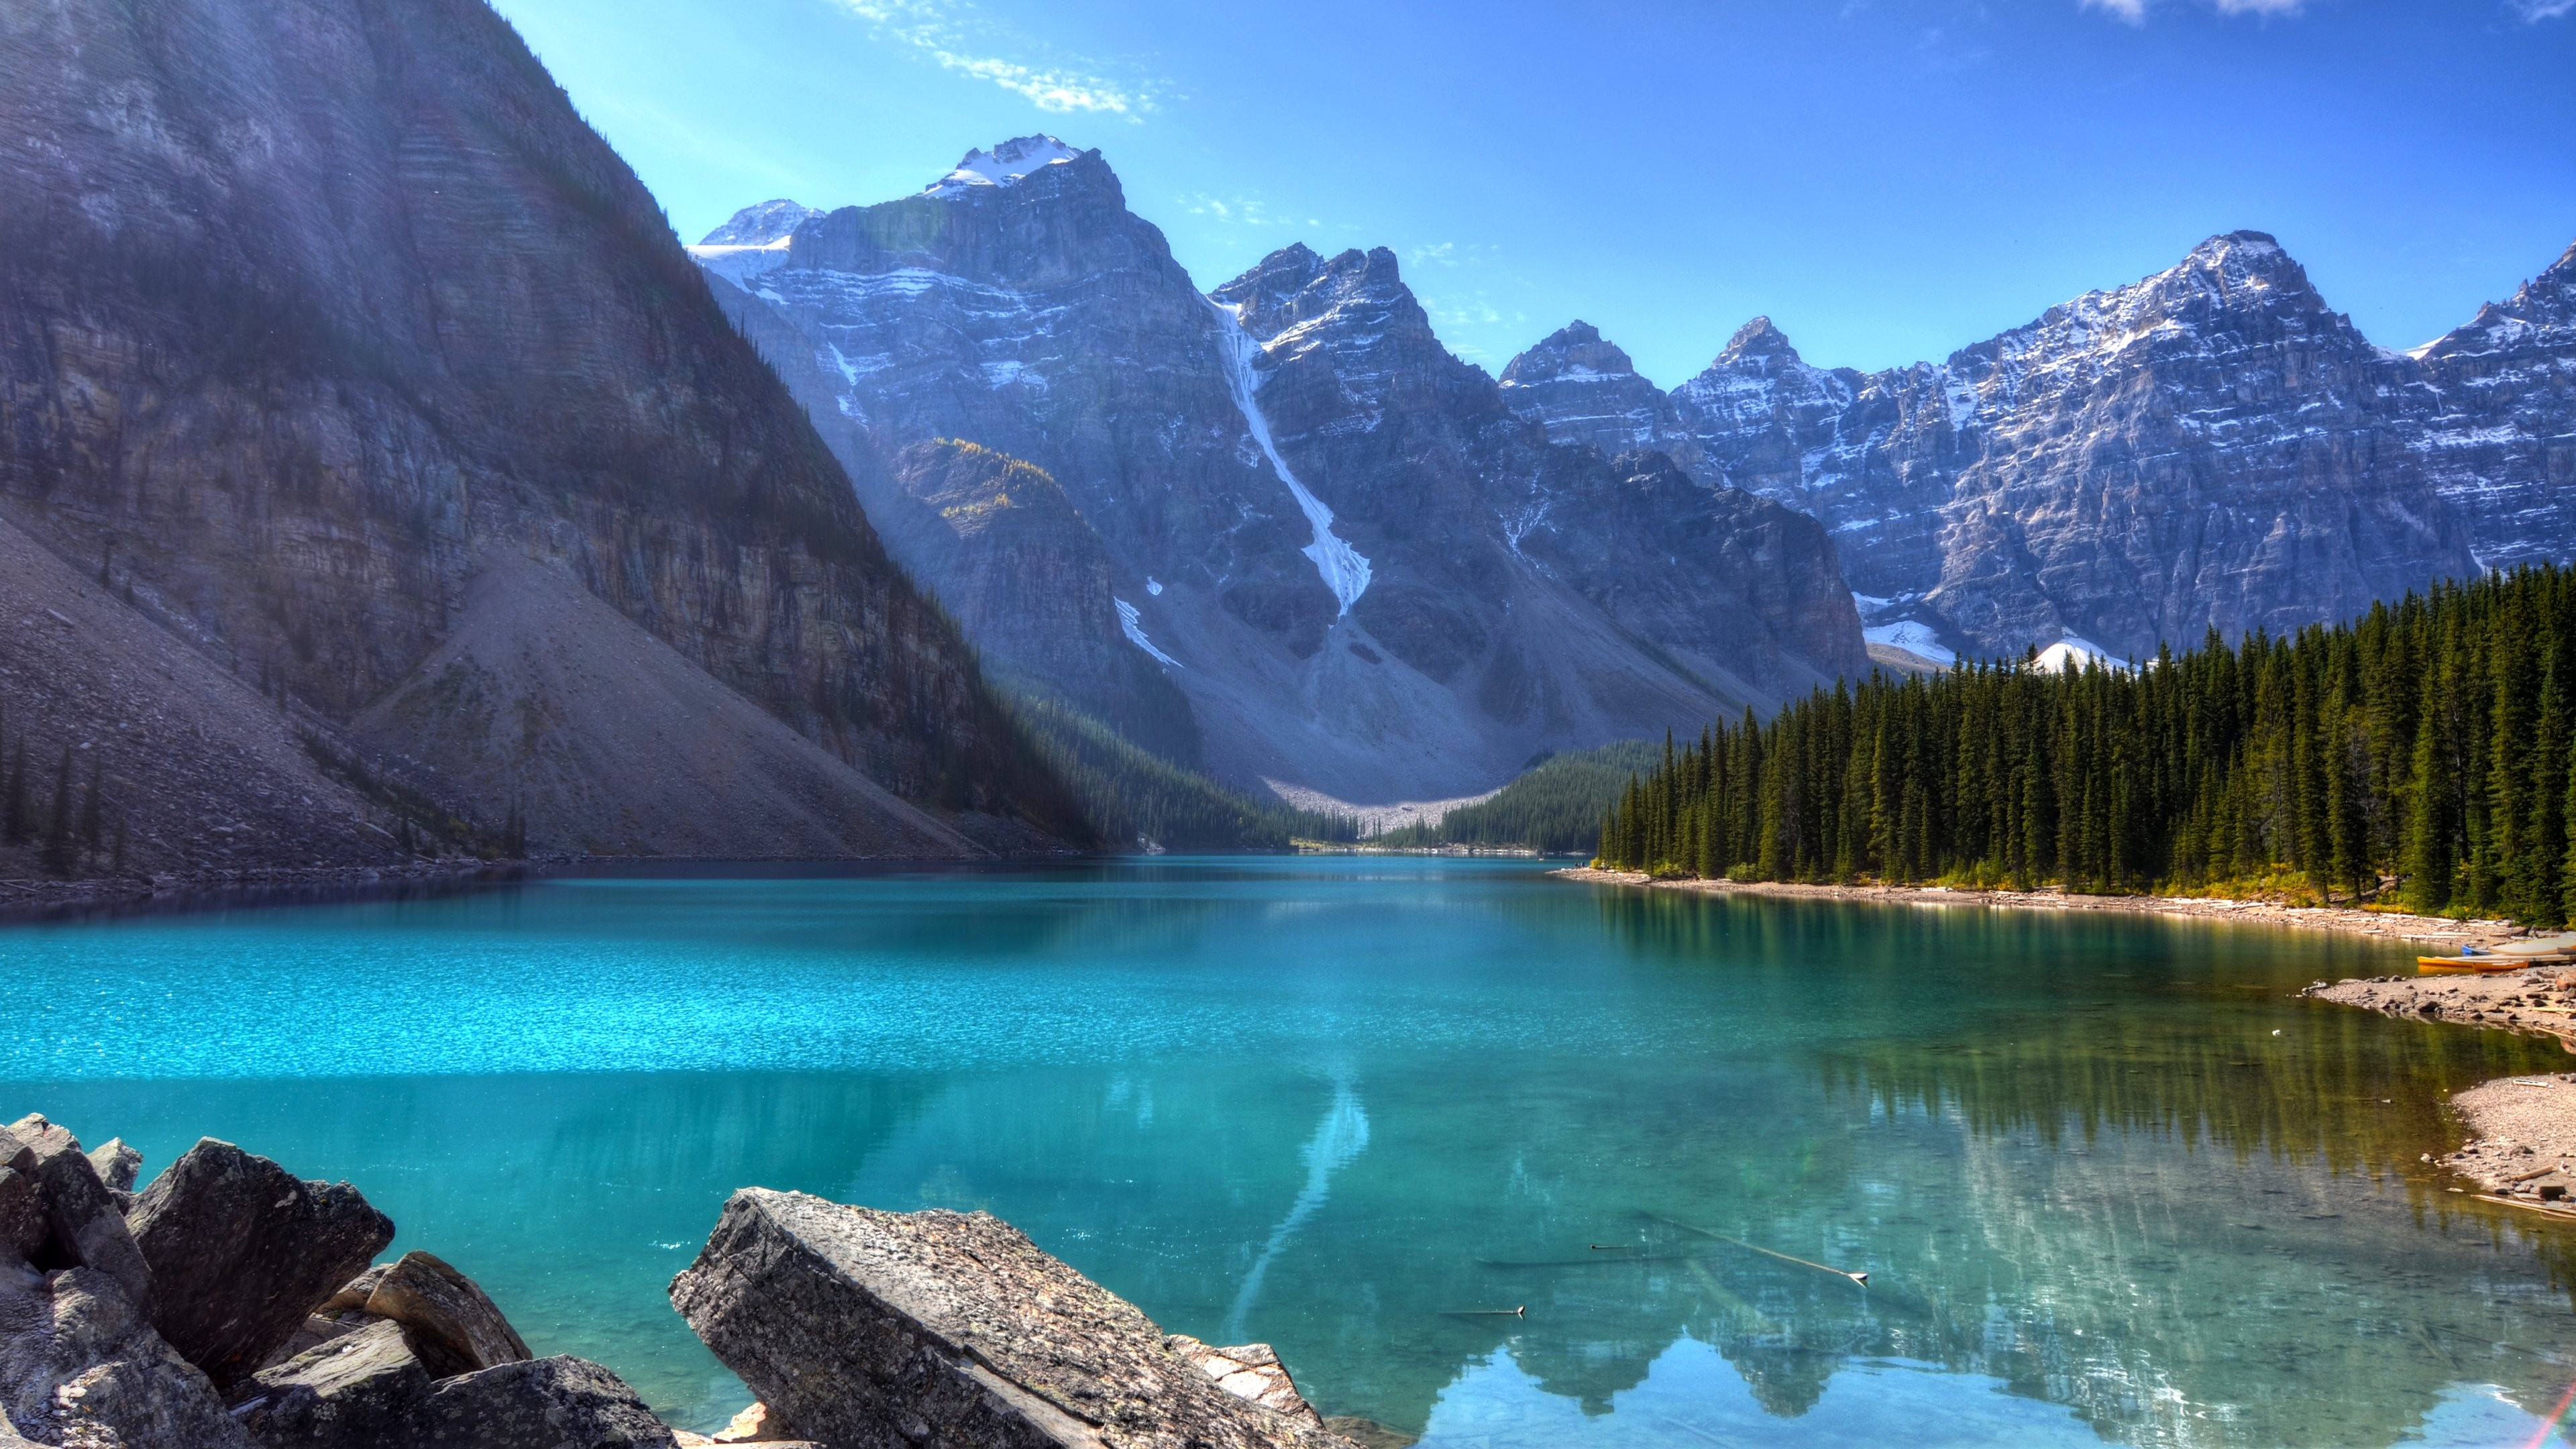 Res: 3840x2160, Moraine Lake 4K Ultra HD Wallpaper 4878x3225 768x432